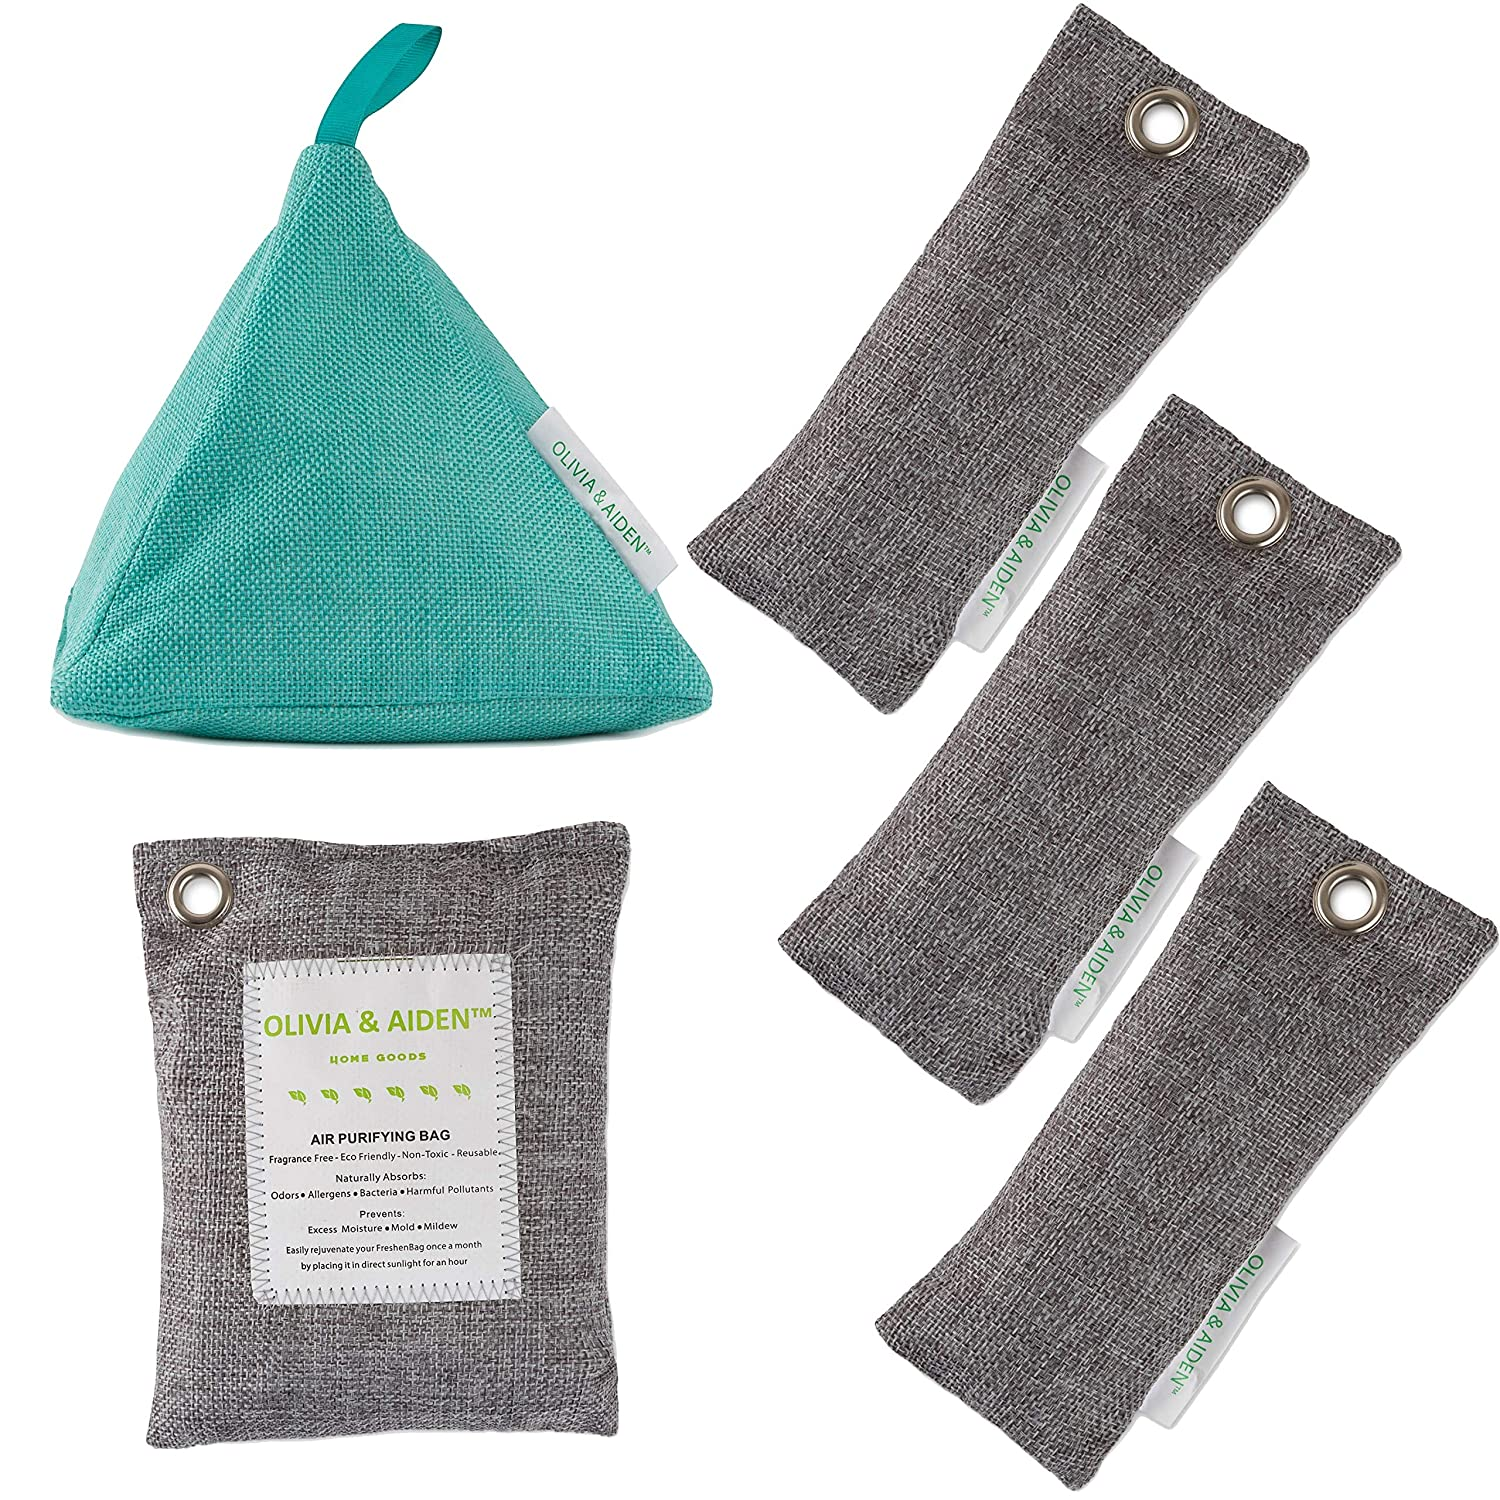 OLIVIA & AIDEN 5 Pack- All Natural Air Freshener - Eco Friendly Odor Eliminator and Moisture Absorber Activated Bamboo Charcoal - Closet and Room Air Purifier  1 x 400g - 1 x 200g – 3 x 50g Platinum Sales Group